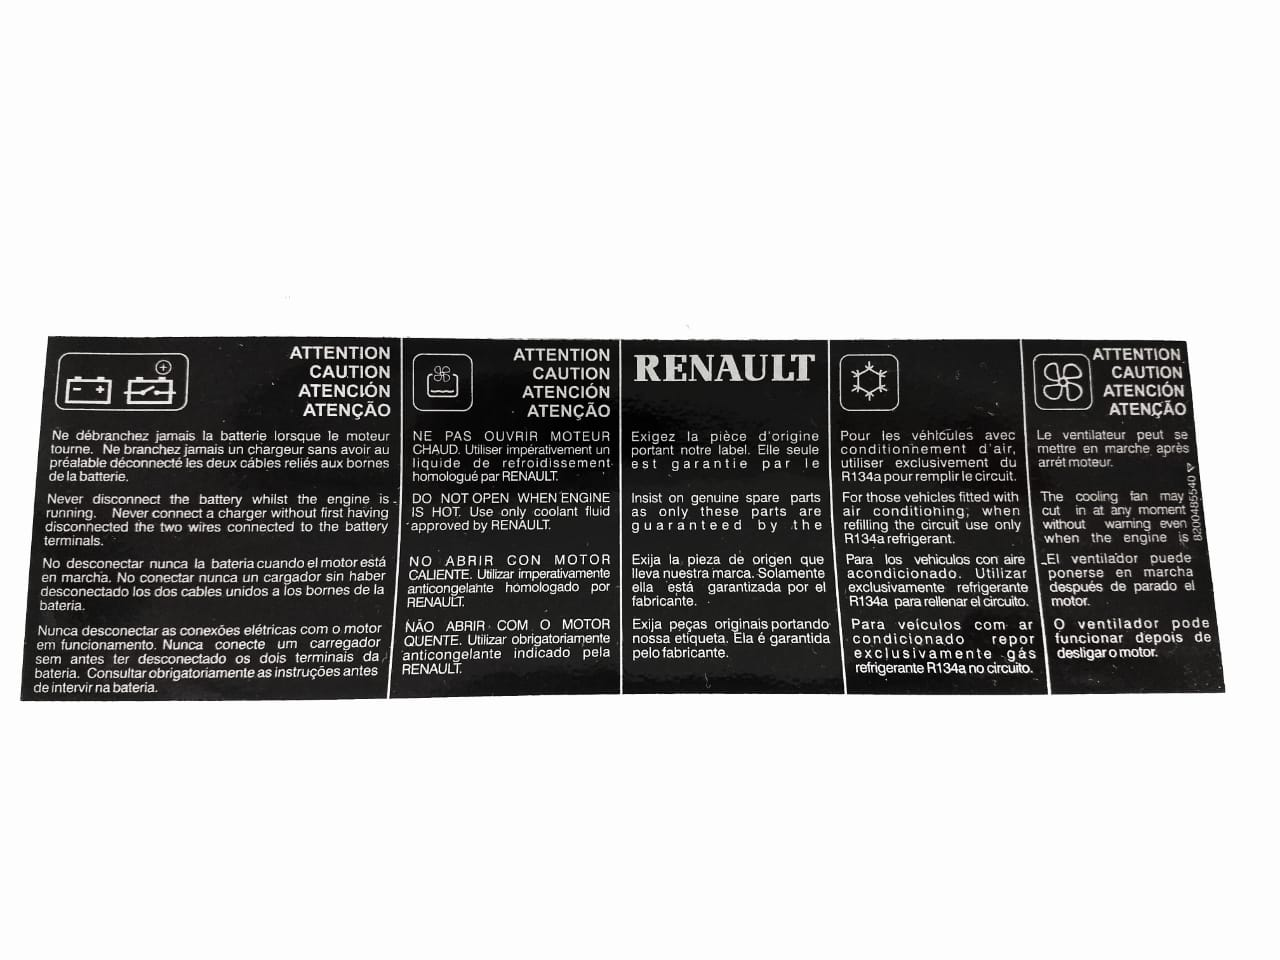 Etiqueta do Painel Frontal - Emblemas - Pc - renault Symb